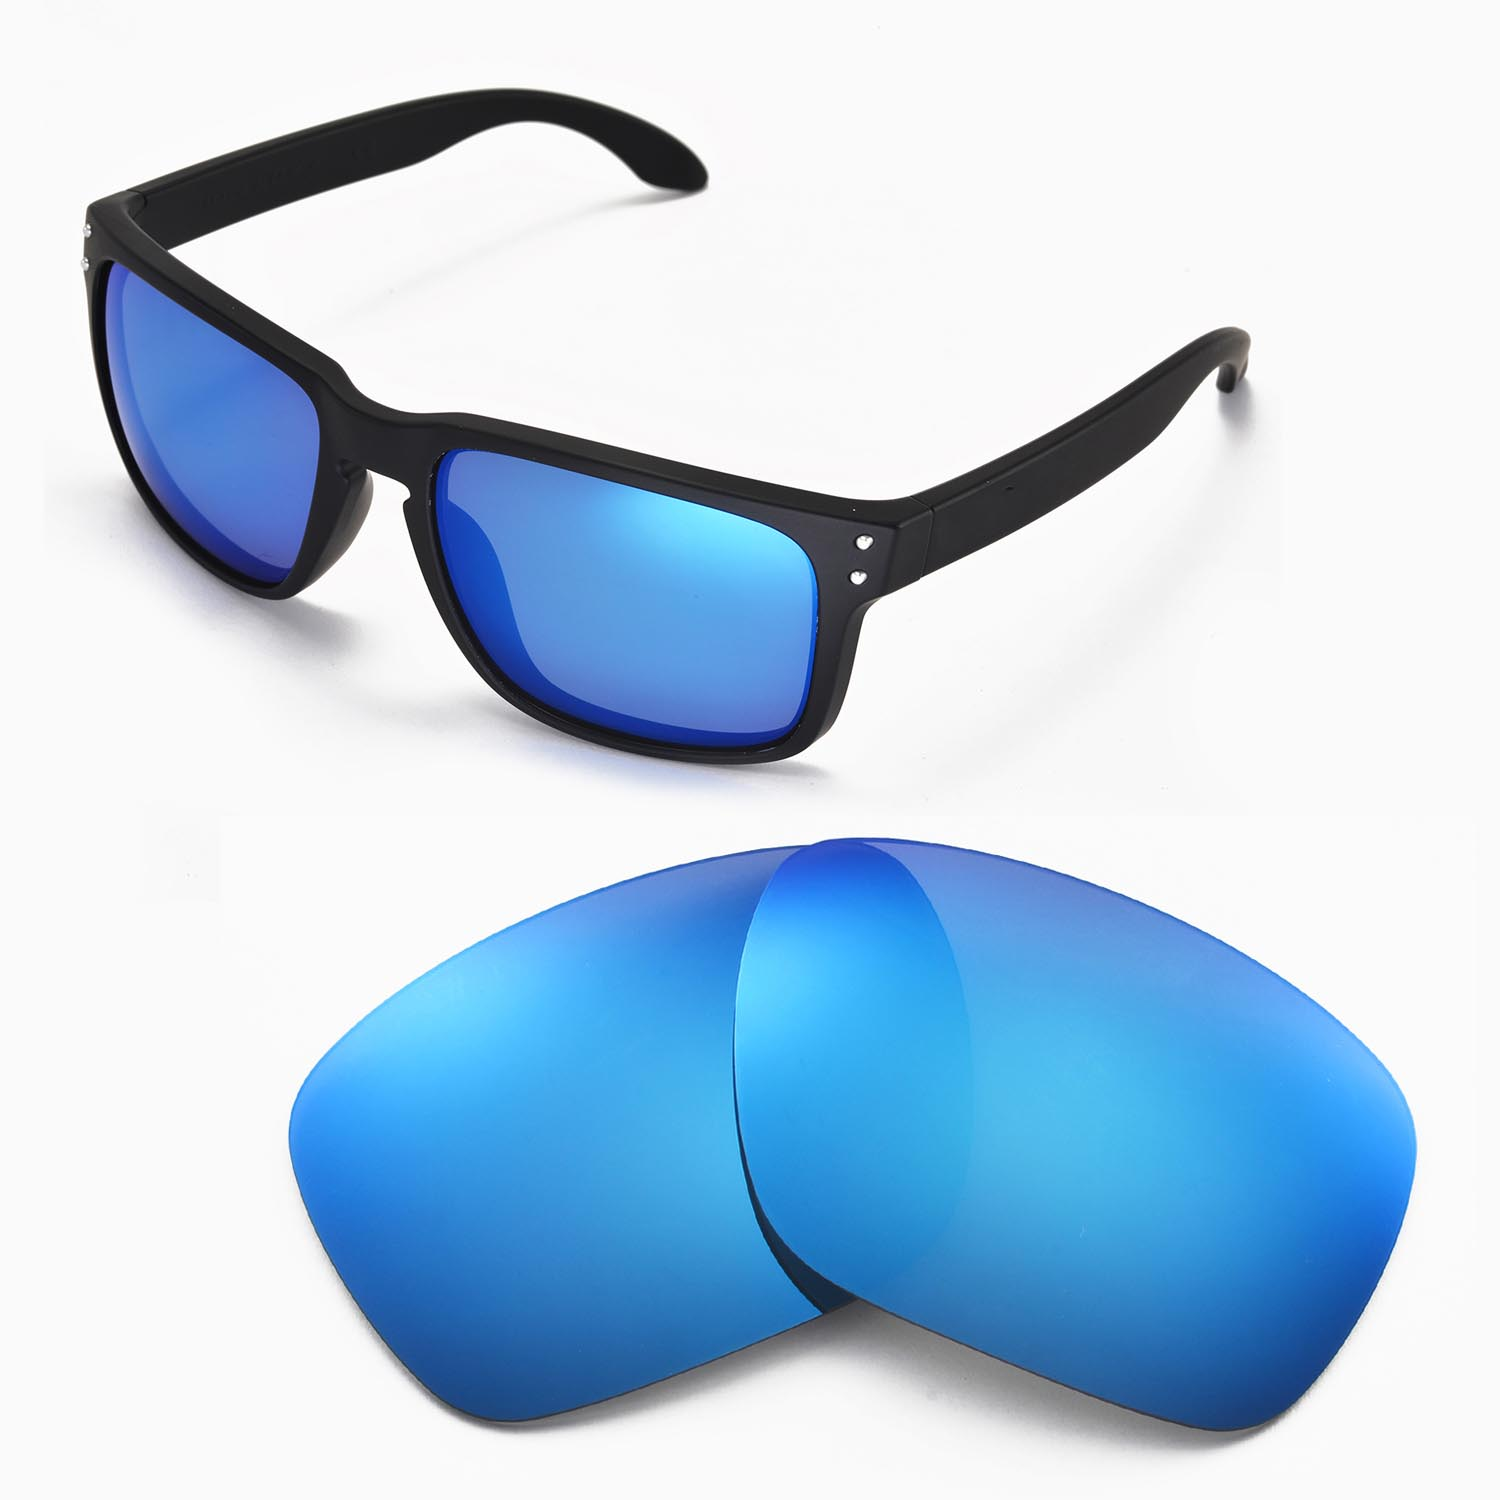 41d3f58ad5cb7 Details about New Walleva Polarized Ice Blue Lenses For Oakley Holbrook